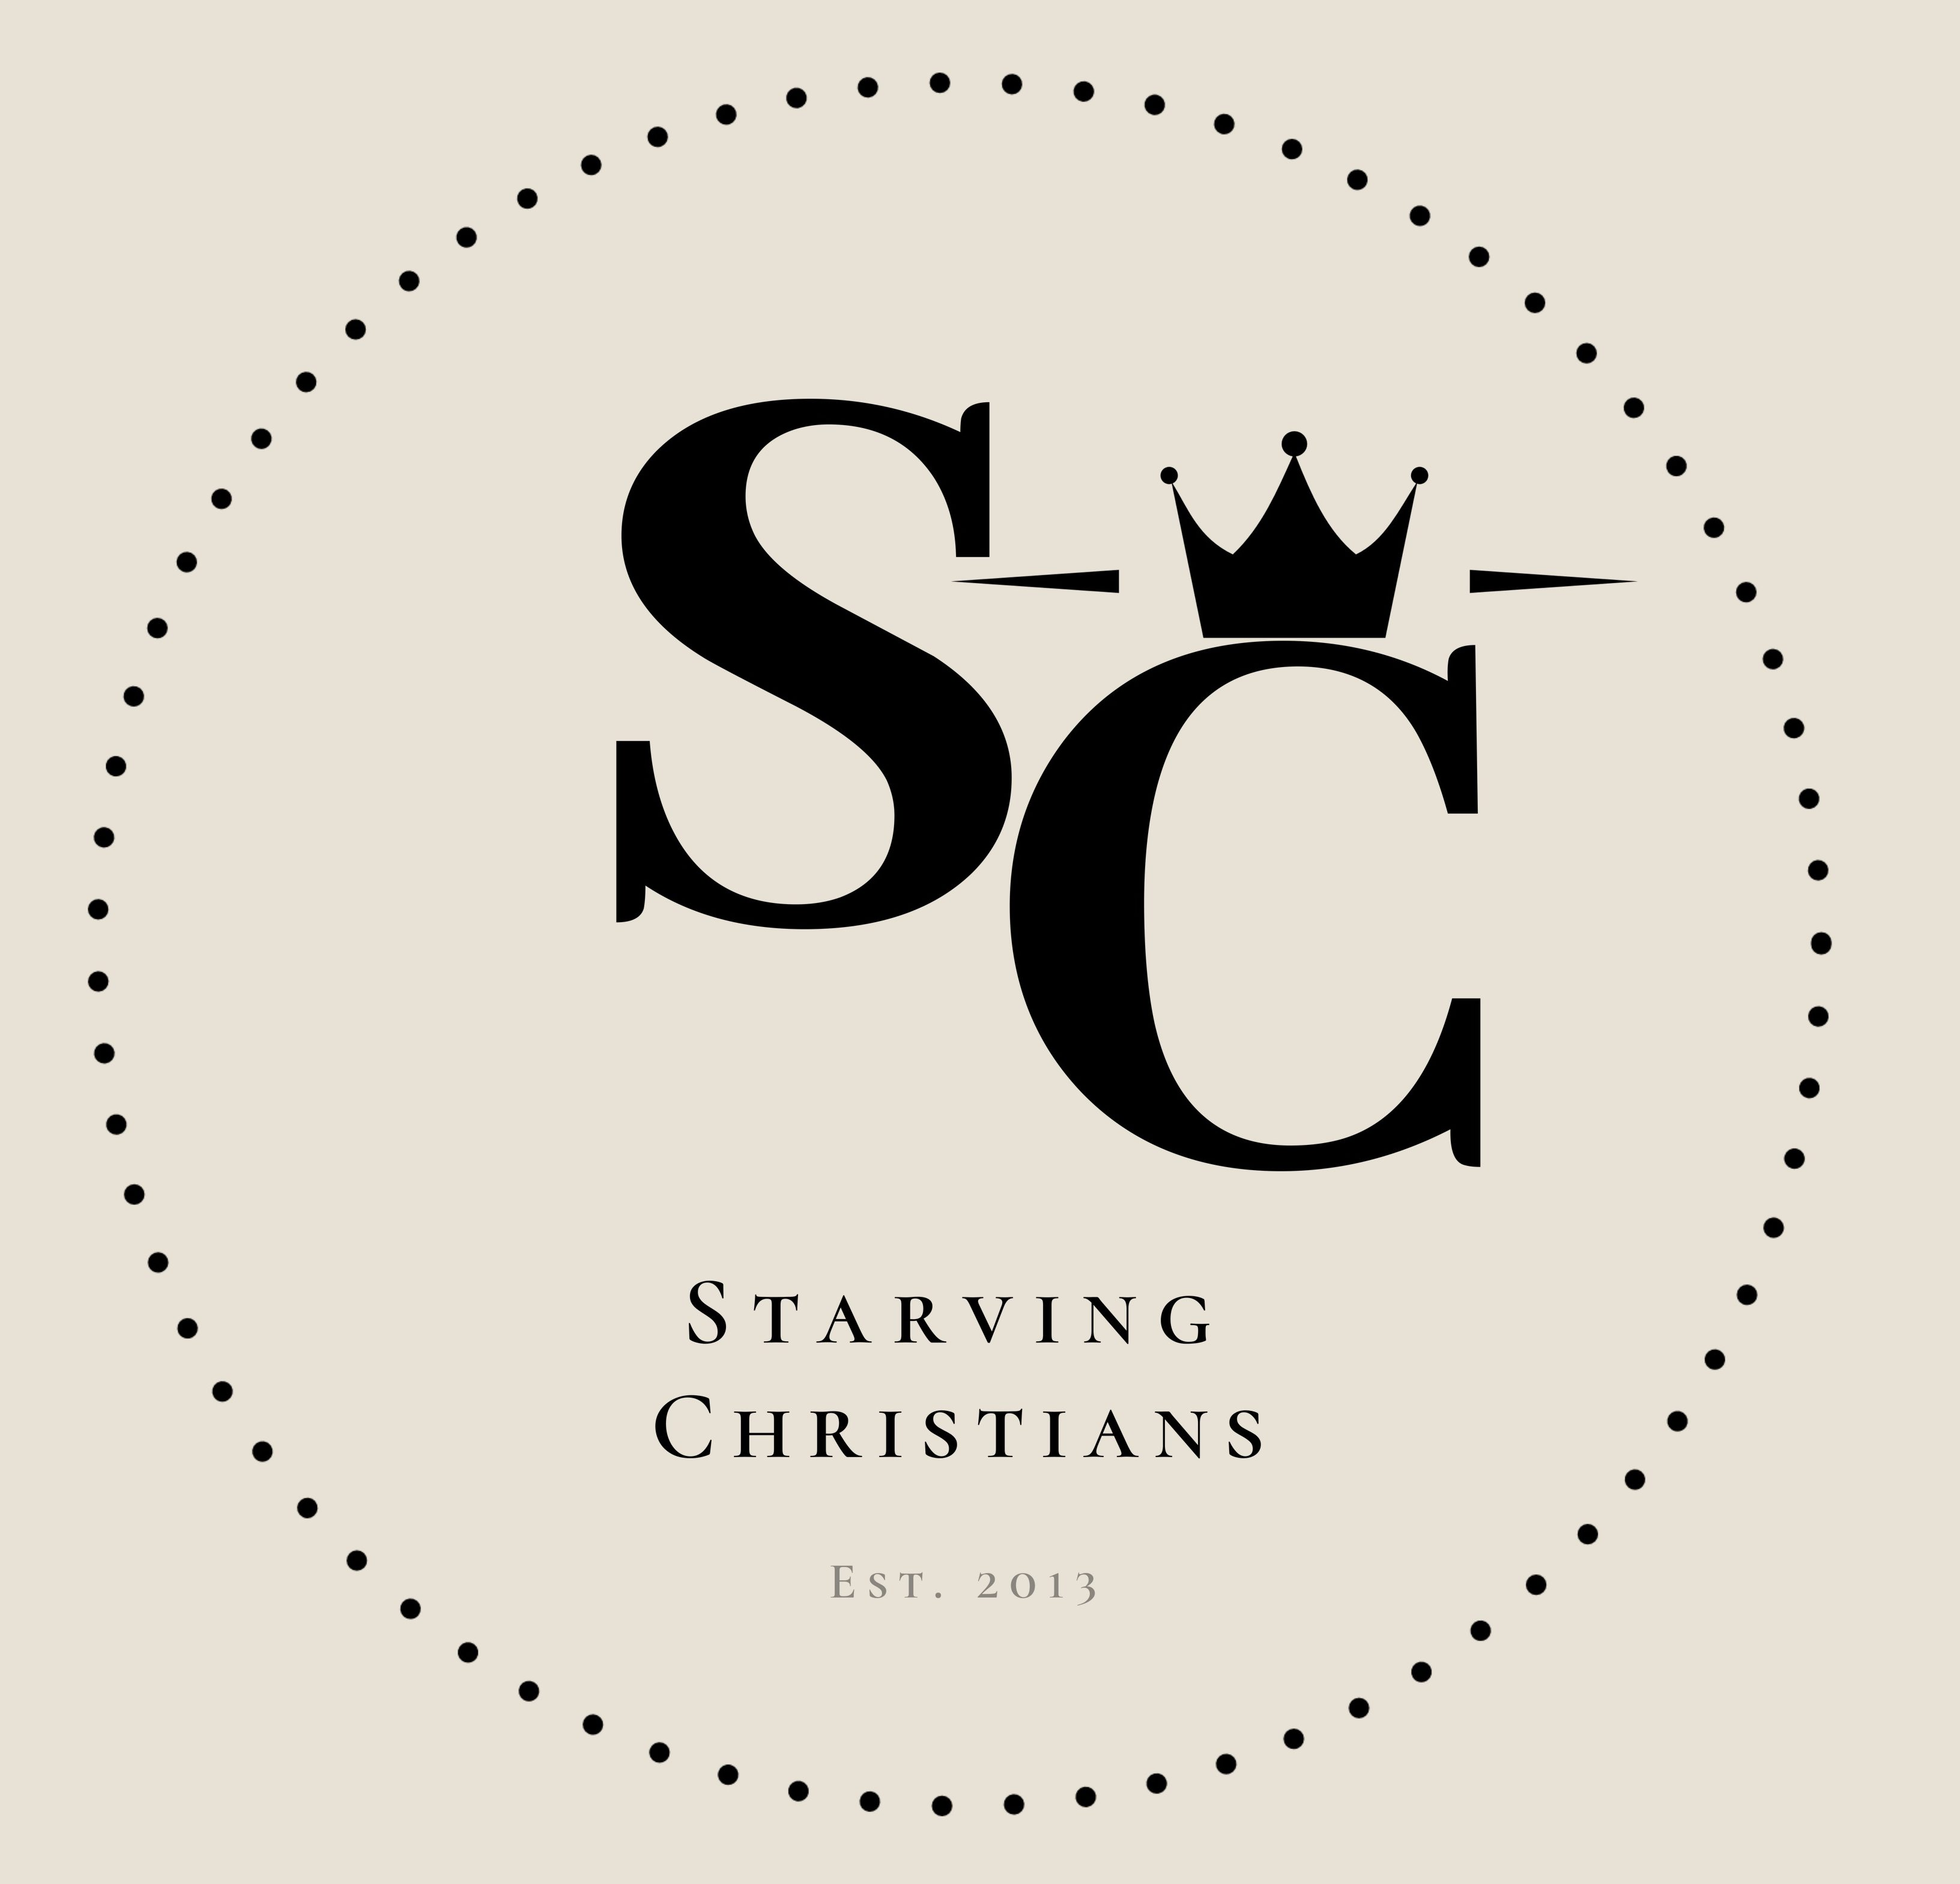 Starving Christians